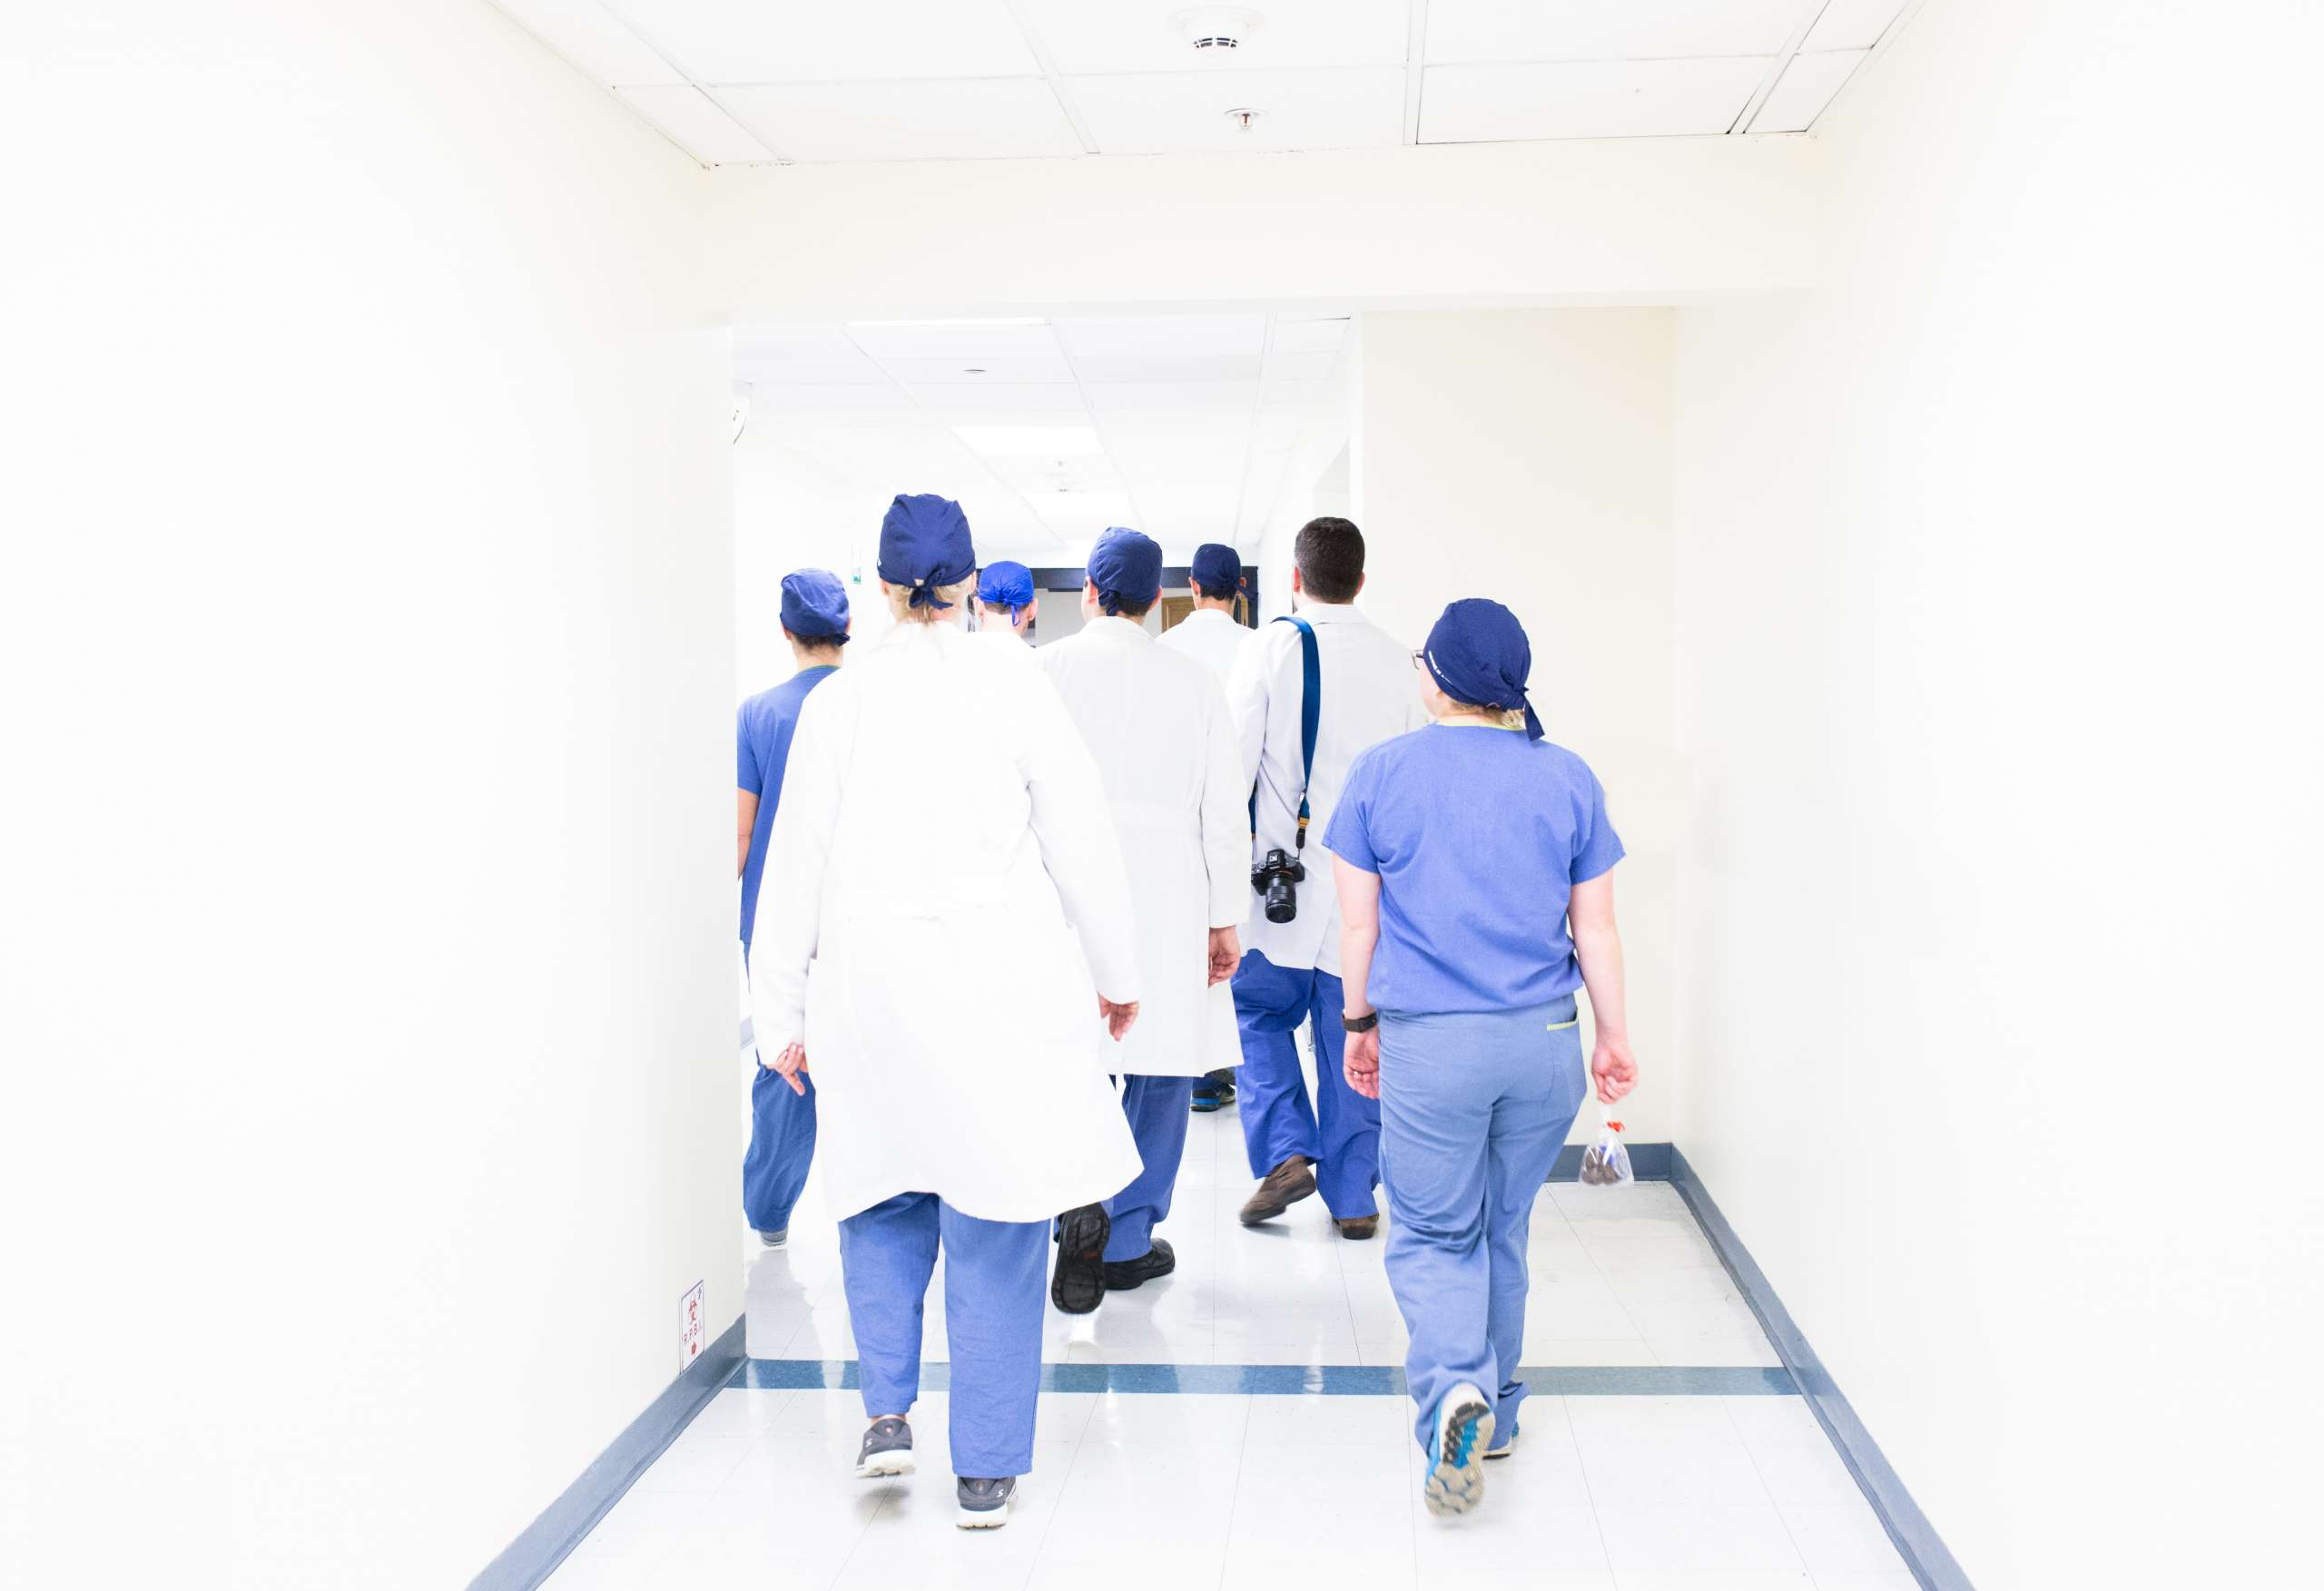 Three Things to Consider When Choosing Staff for Your Medical Facility